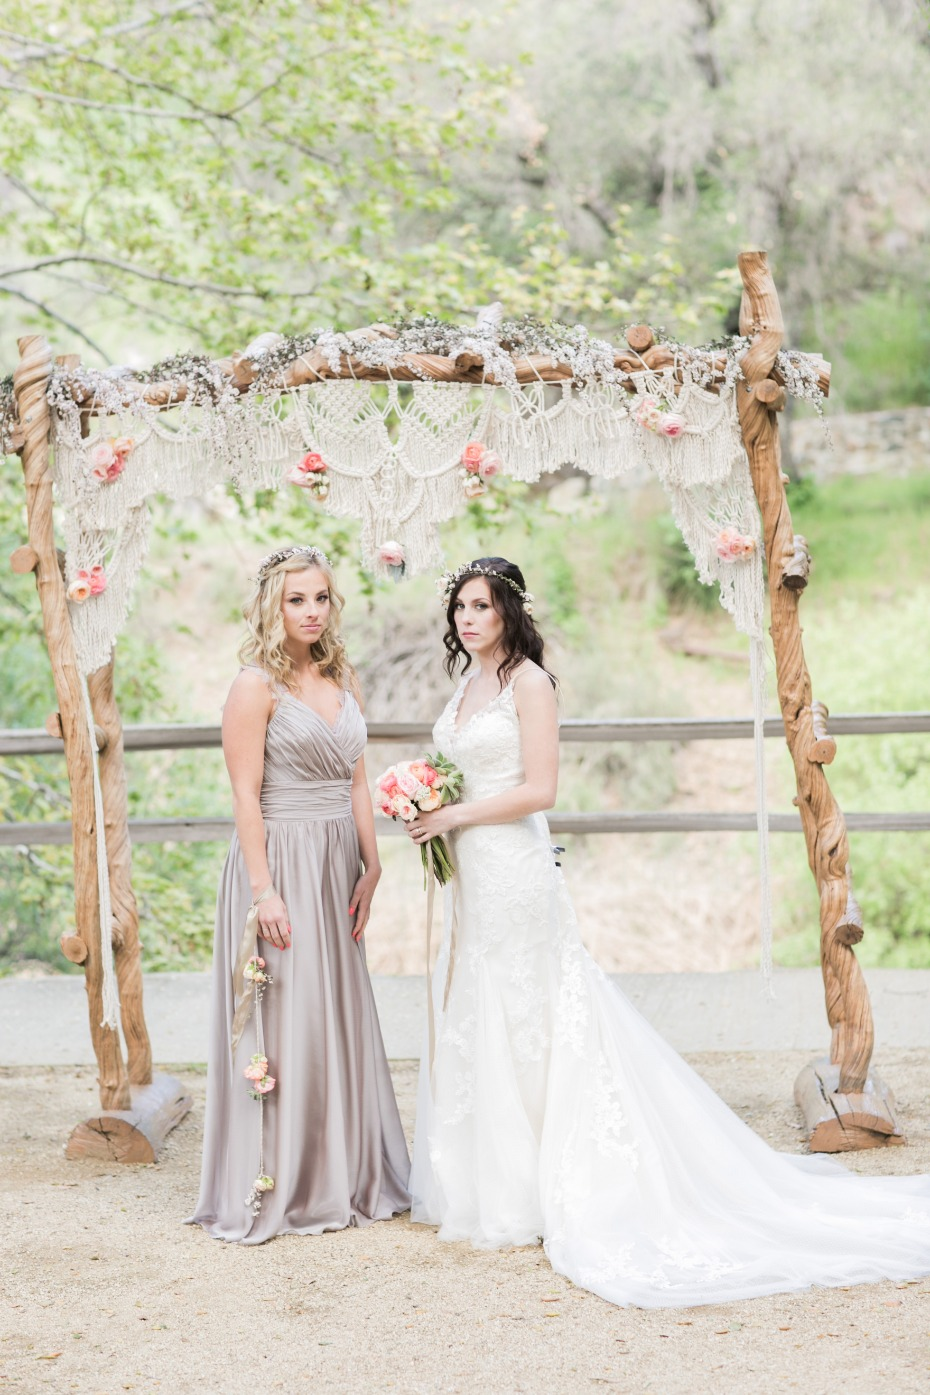 Boho bride and bridesmaid looks